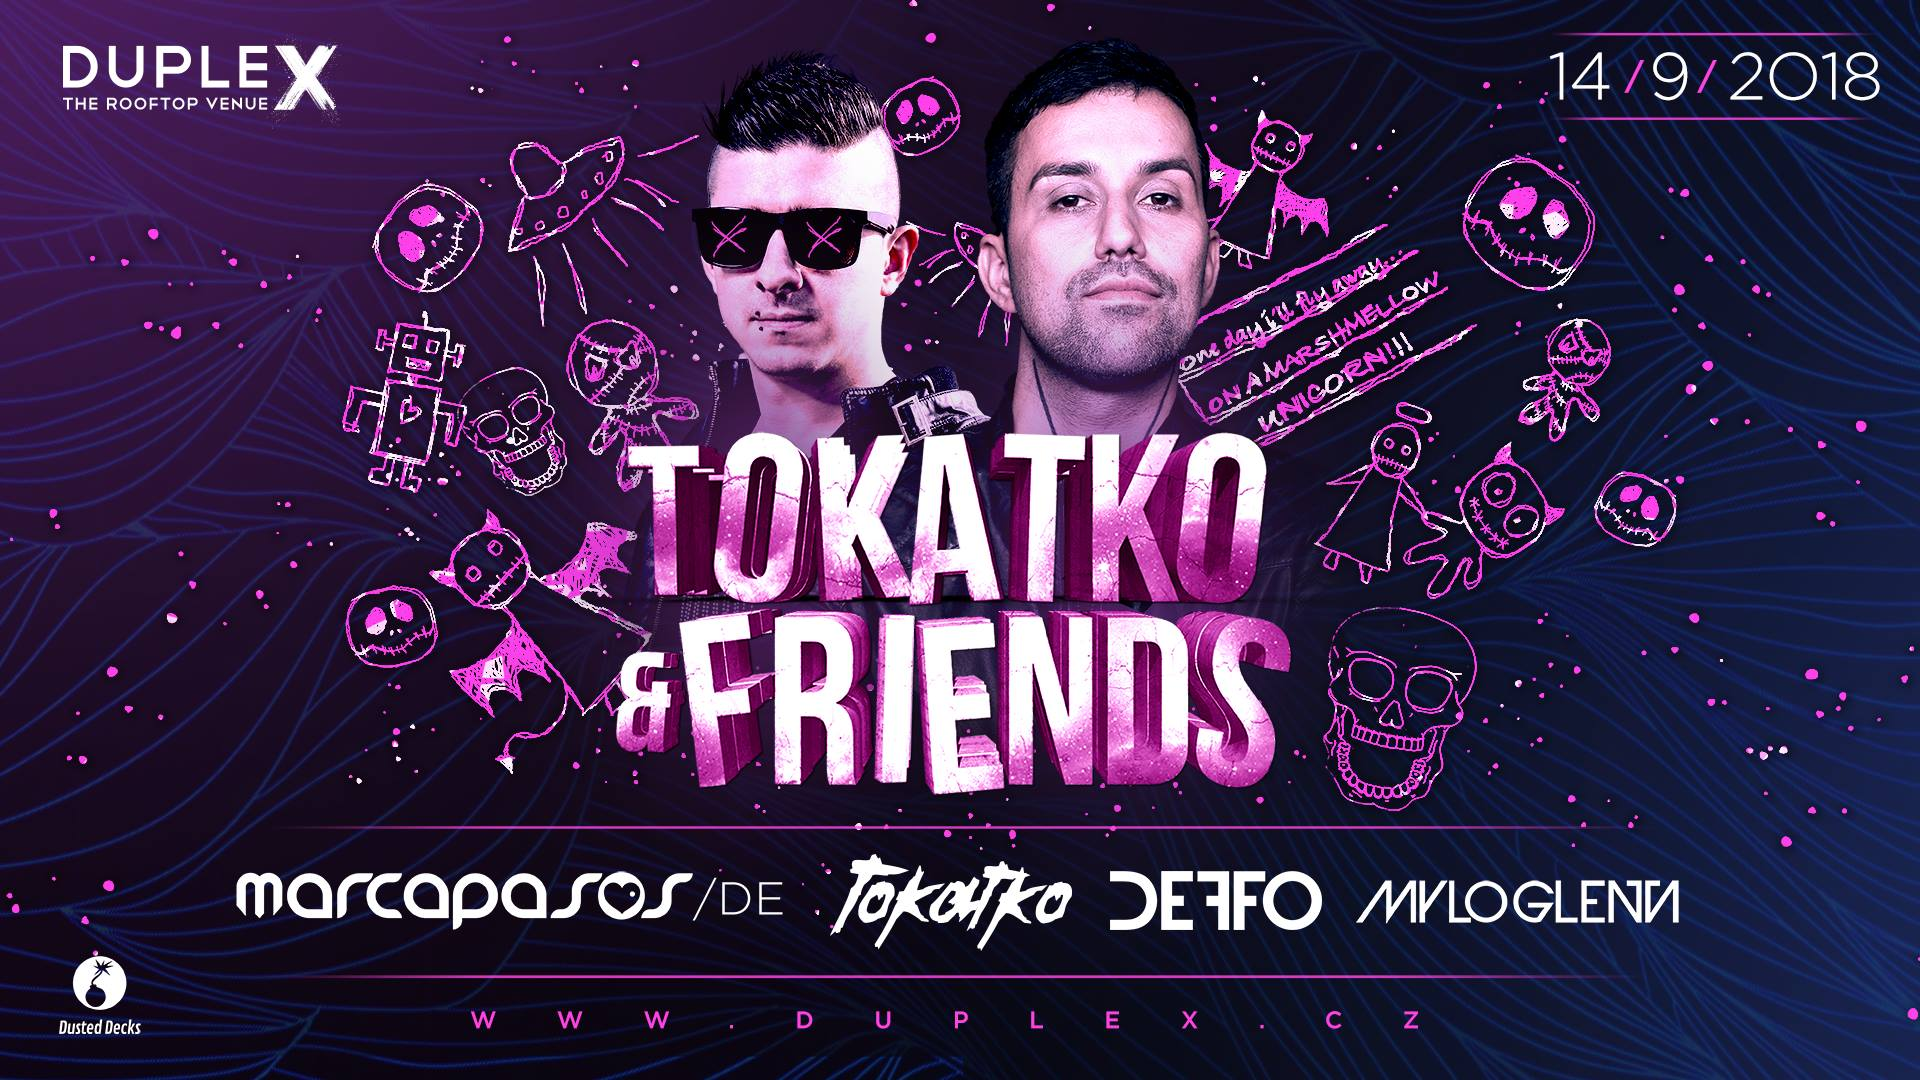 Tokátko & friends - Duplex Session 10 - Marcapasos (DE)